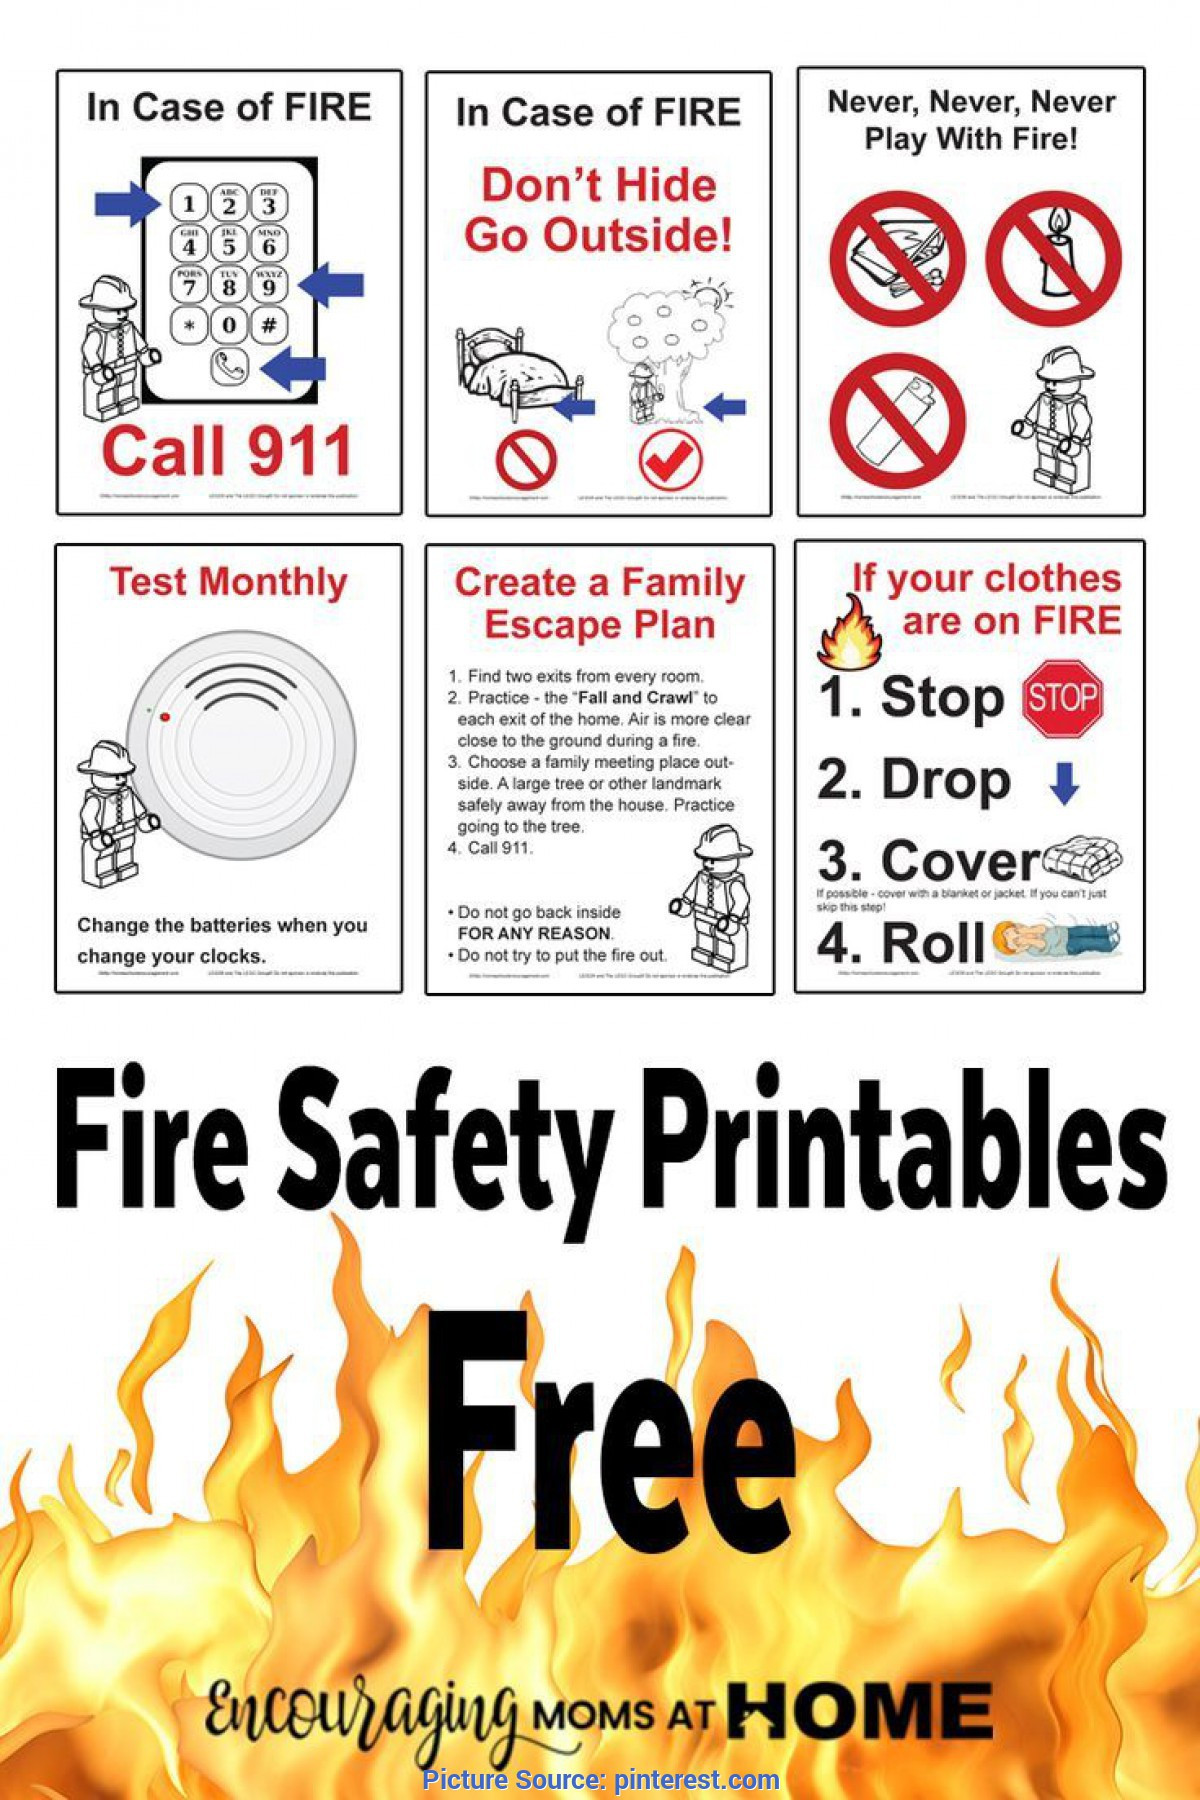 Fire Safety Worksheets Preschool Fire Safety Crafts for Kids Lesson Plans Preschoolers Fire